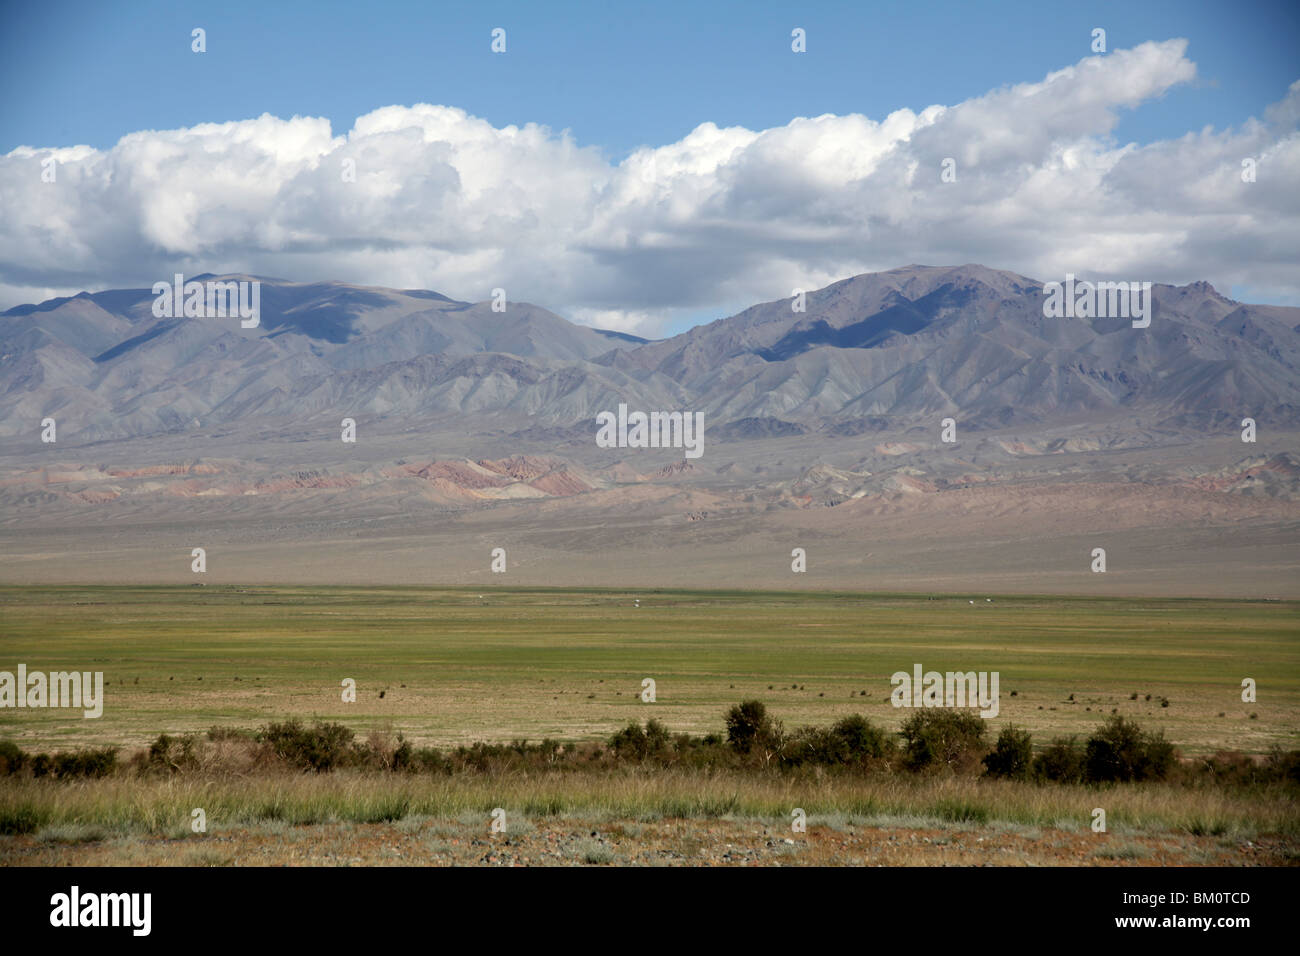 Mountains loom over the mongolian Steppe in Mongolia. - Stock Image